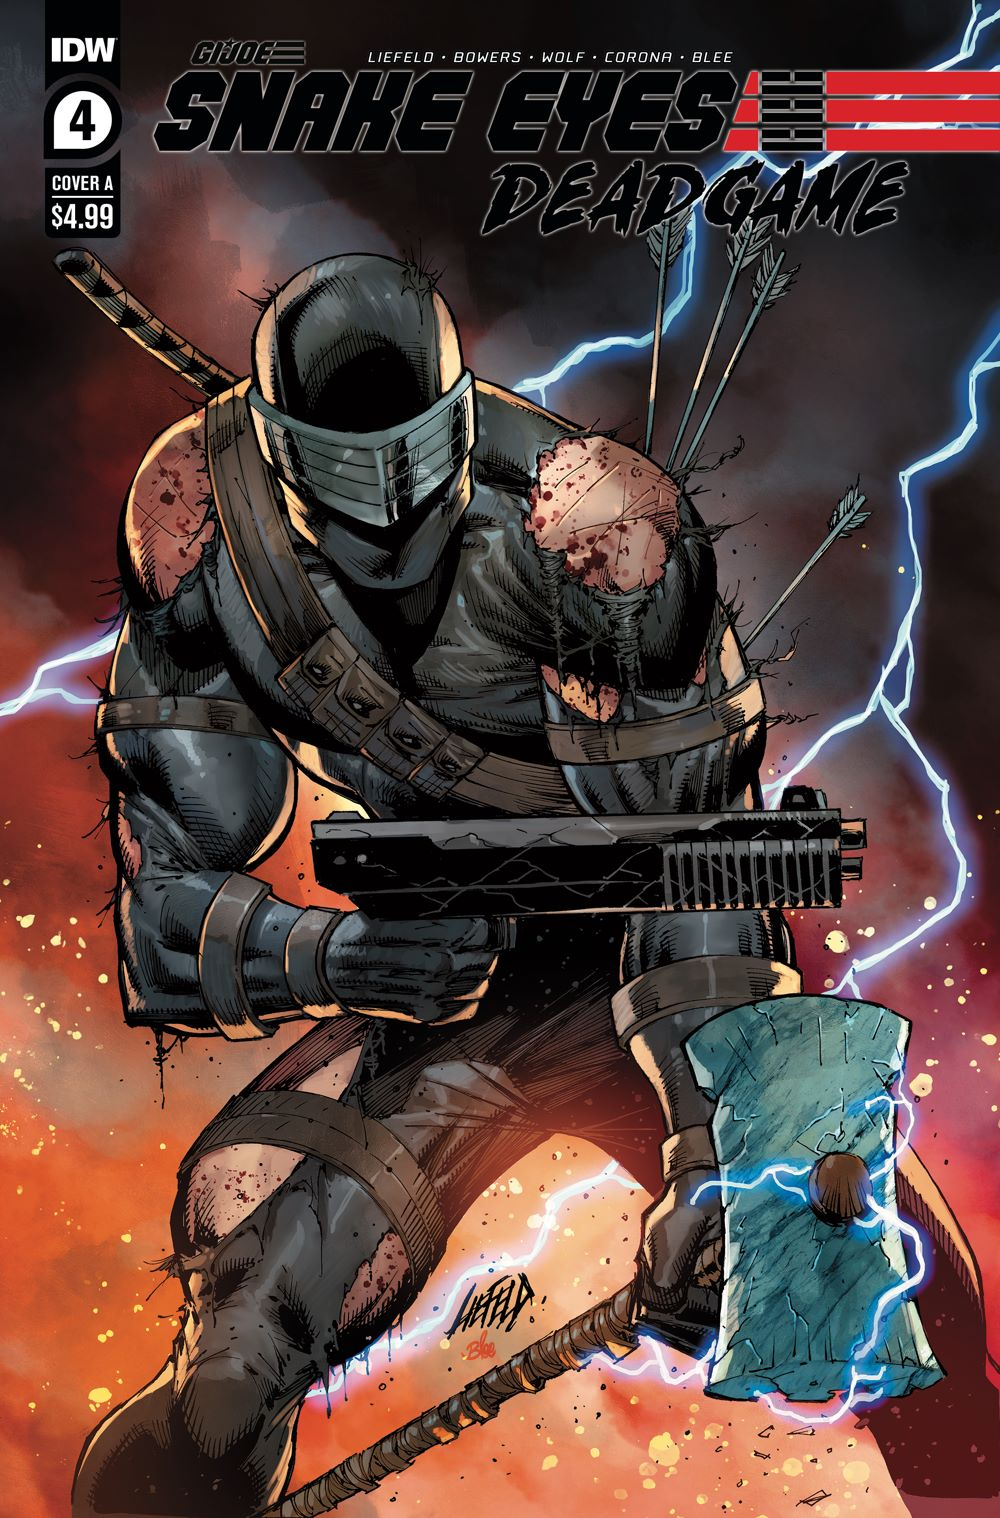 SnakeEyes_DG04-coverA ComicList: IDW Publishing New Releases for 02/03/2021